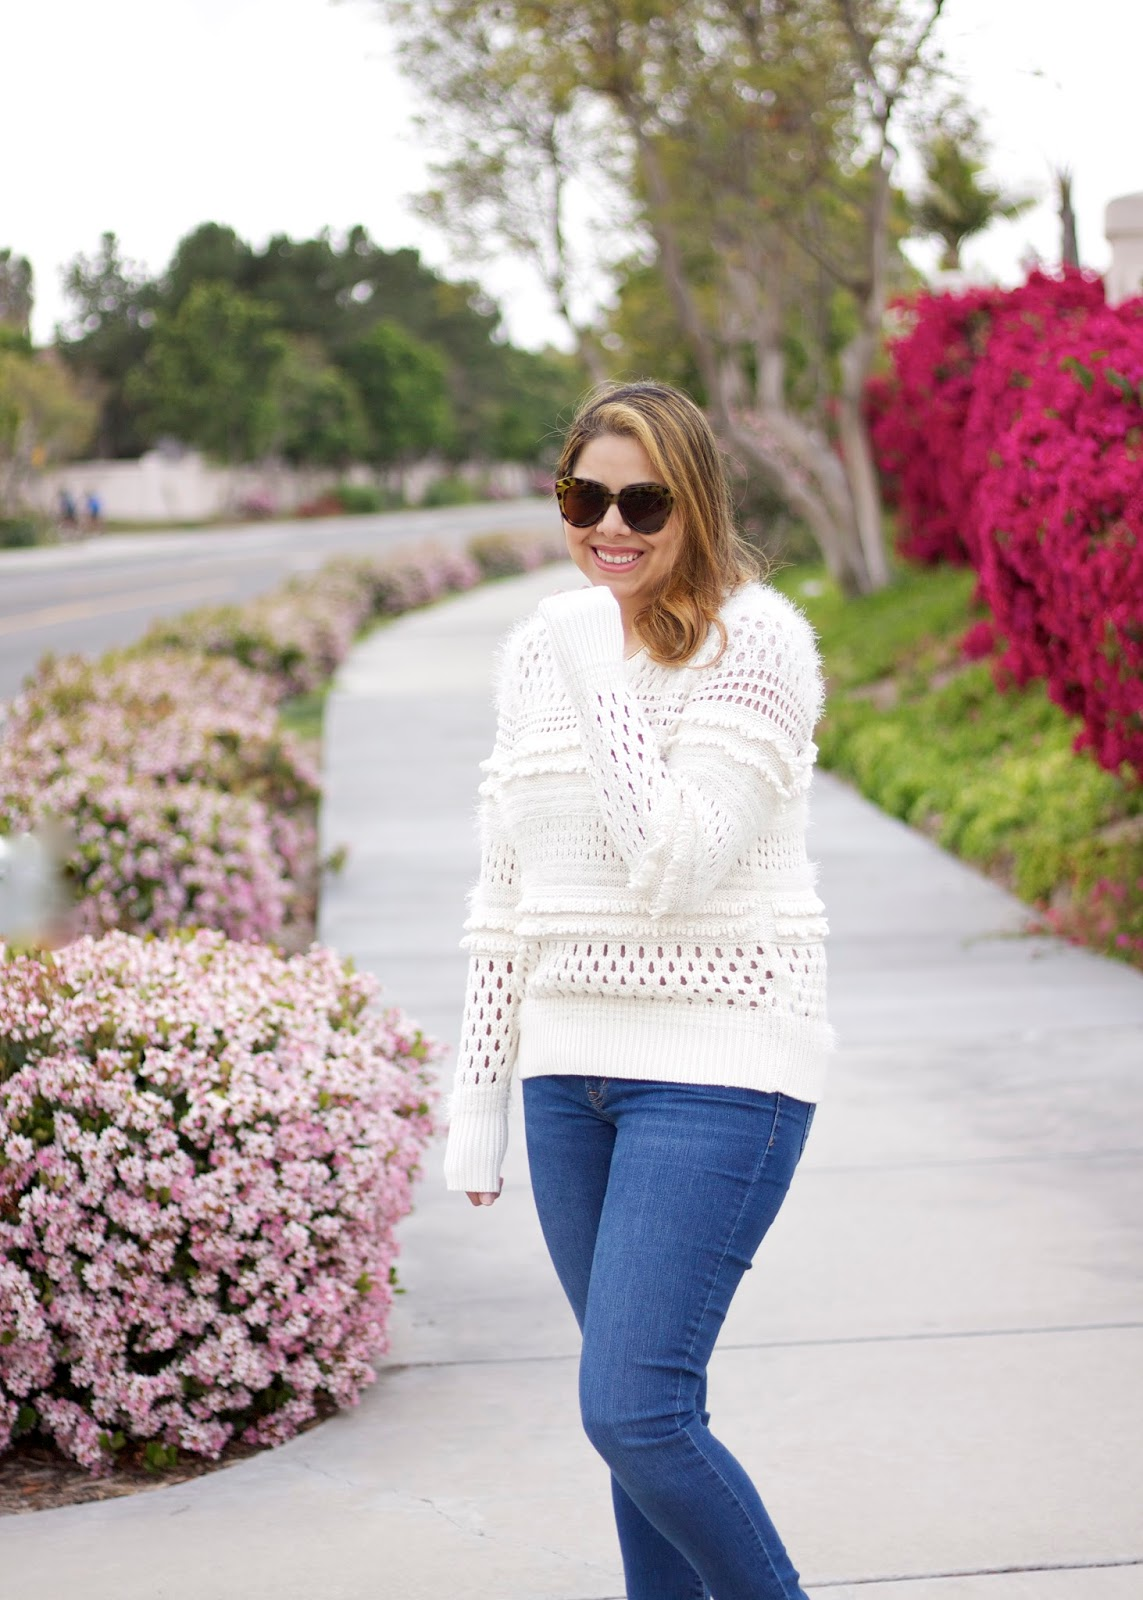 San Diego fashion bloggers, best of san diego bloggers, short hair blogger, old navy jeans